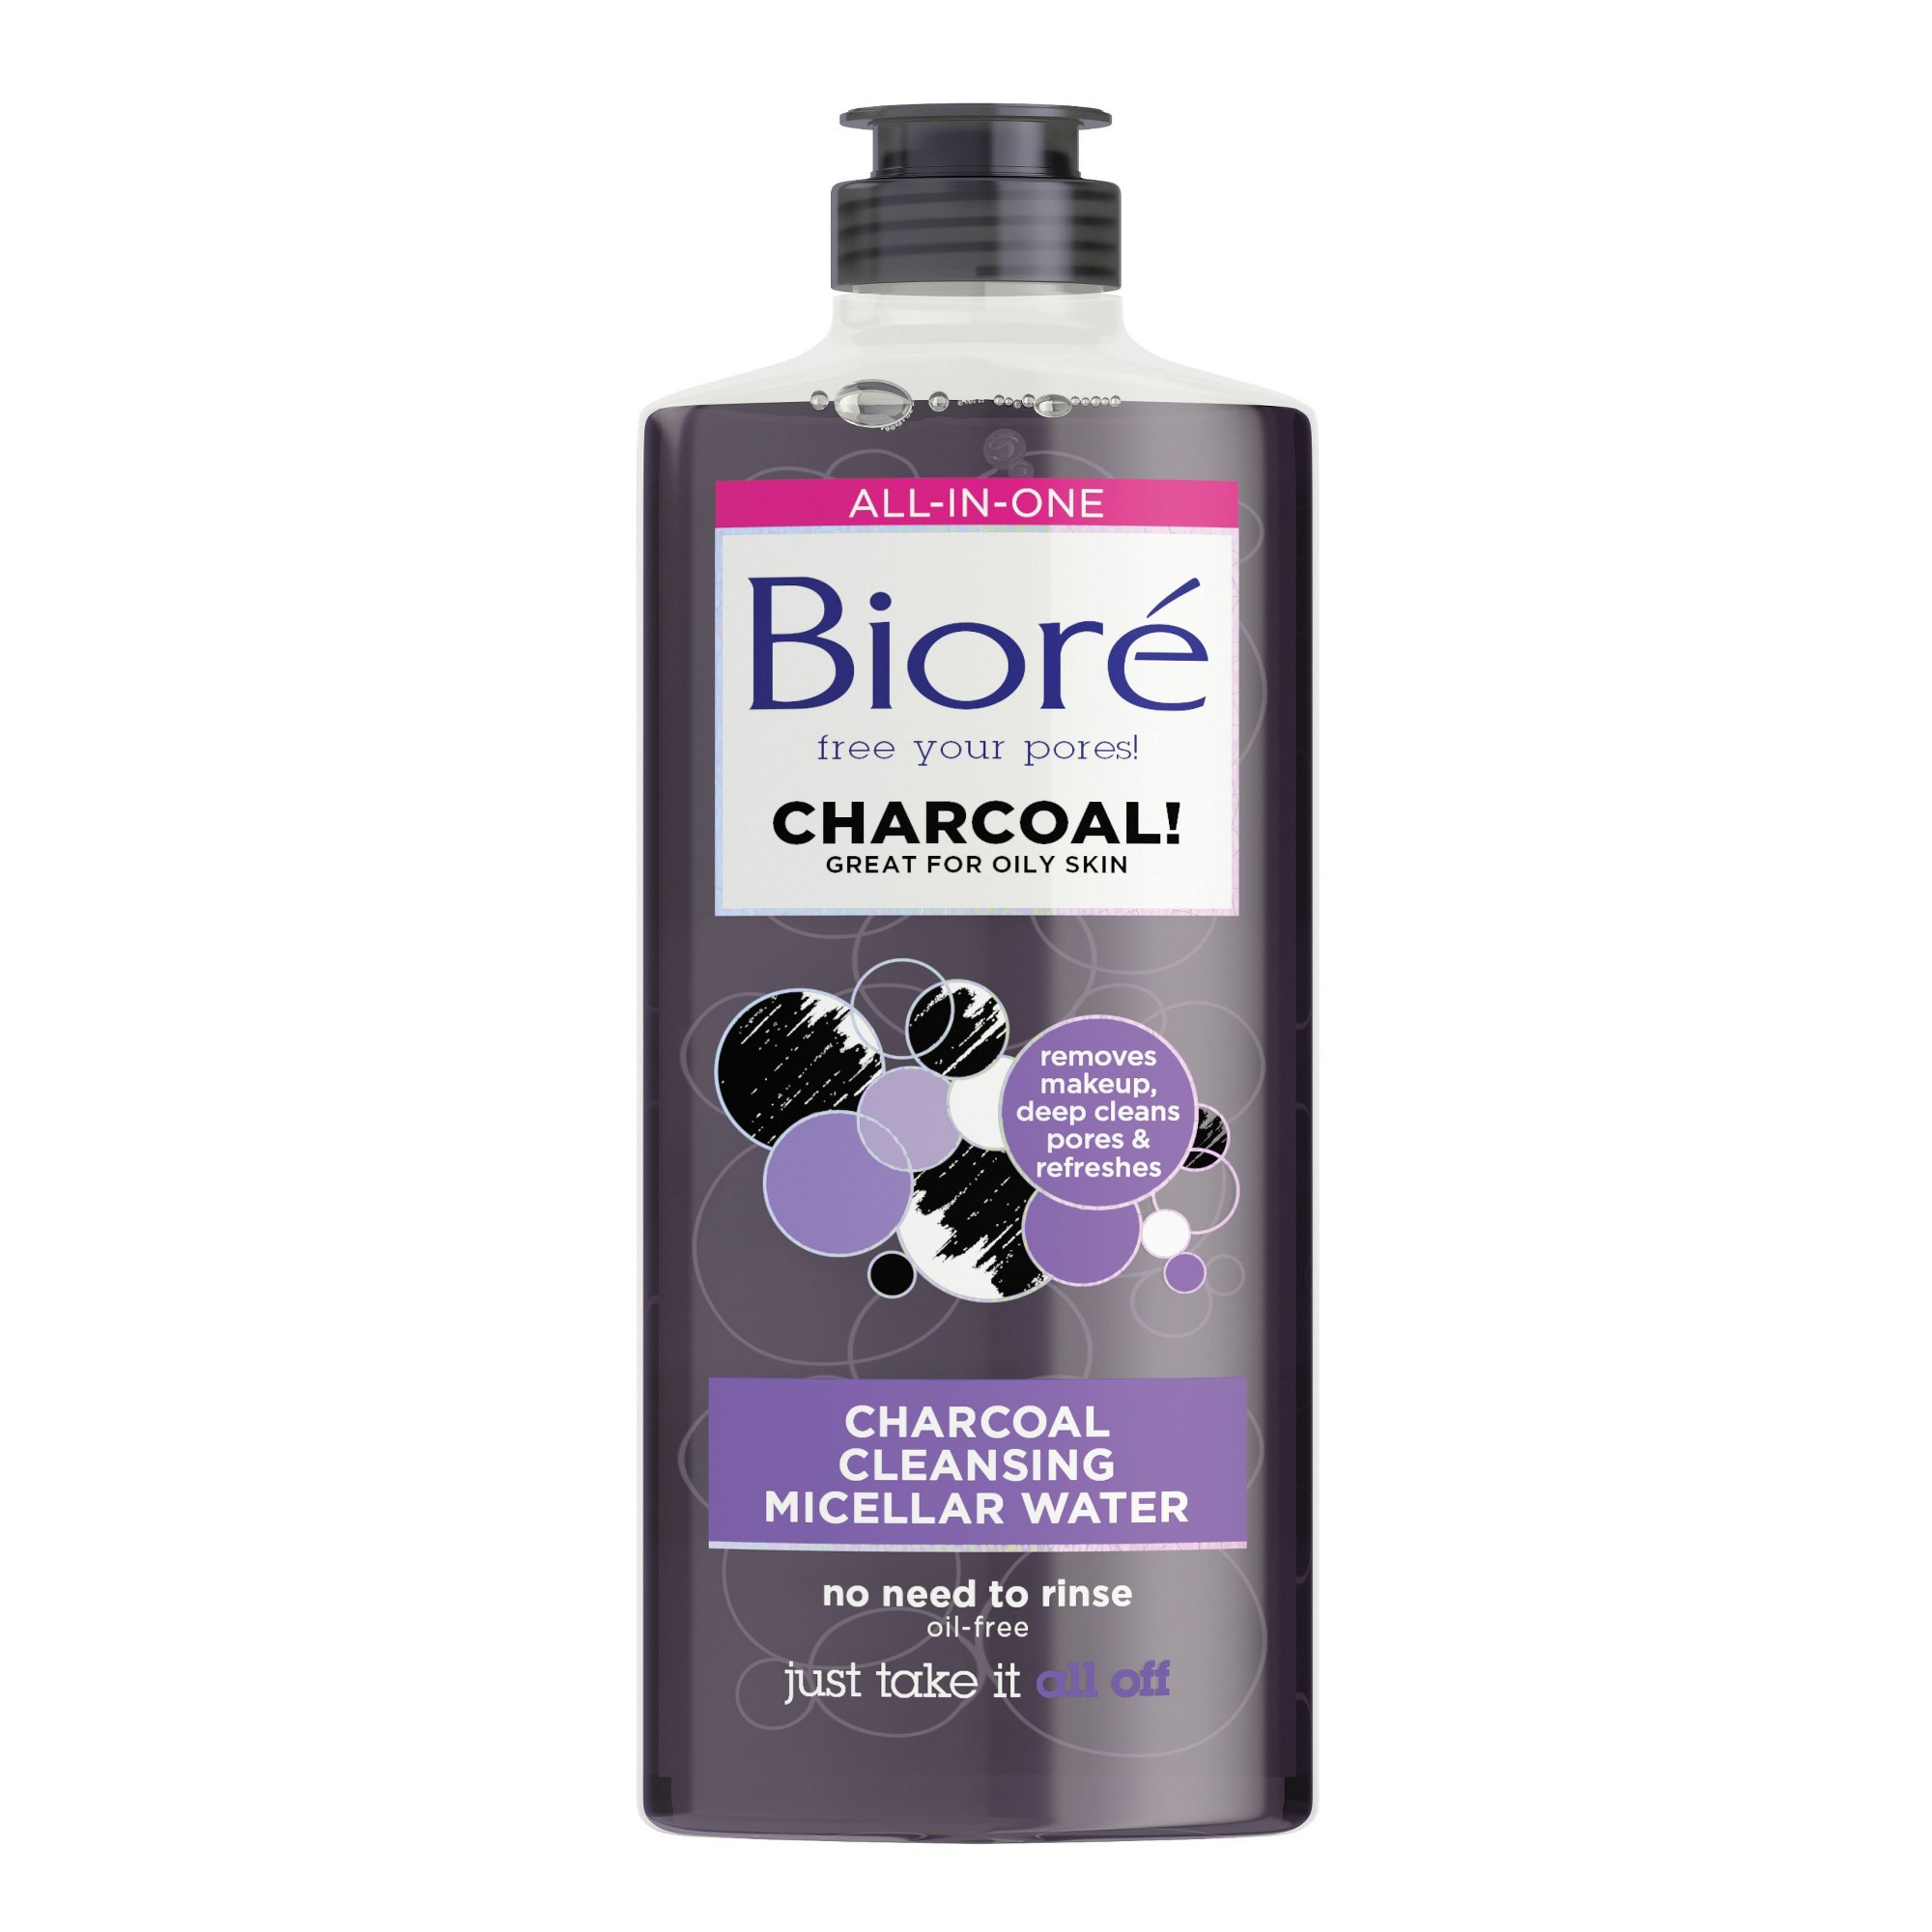 Biore Charcoal Cleansing Micellar Water Facial Cleanser